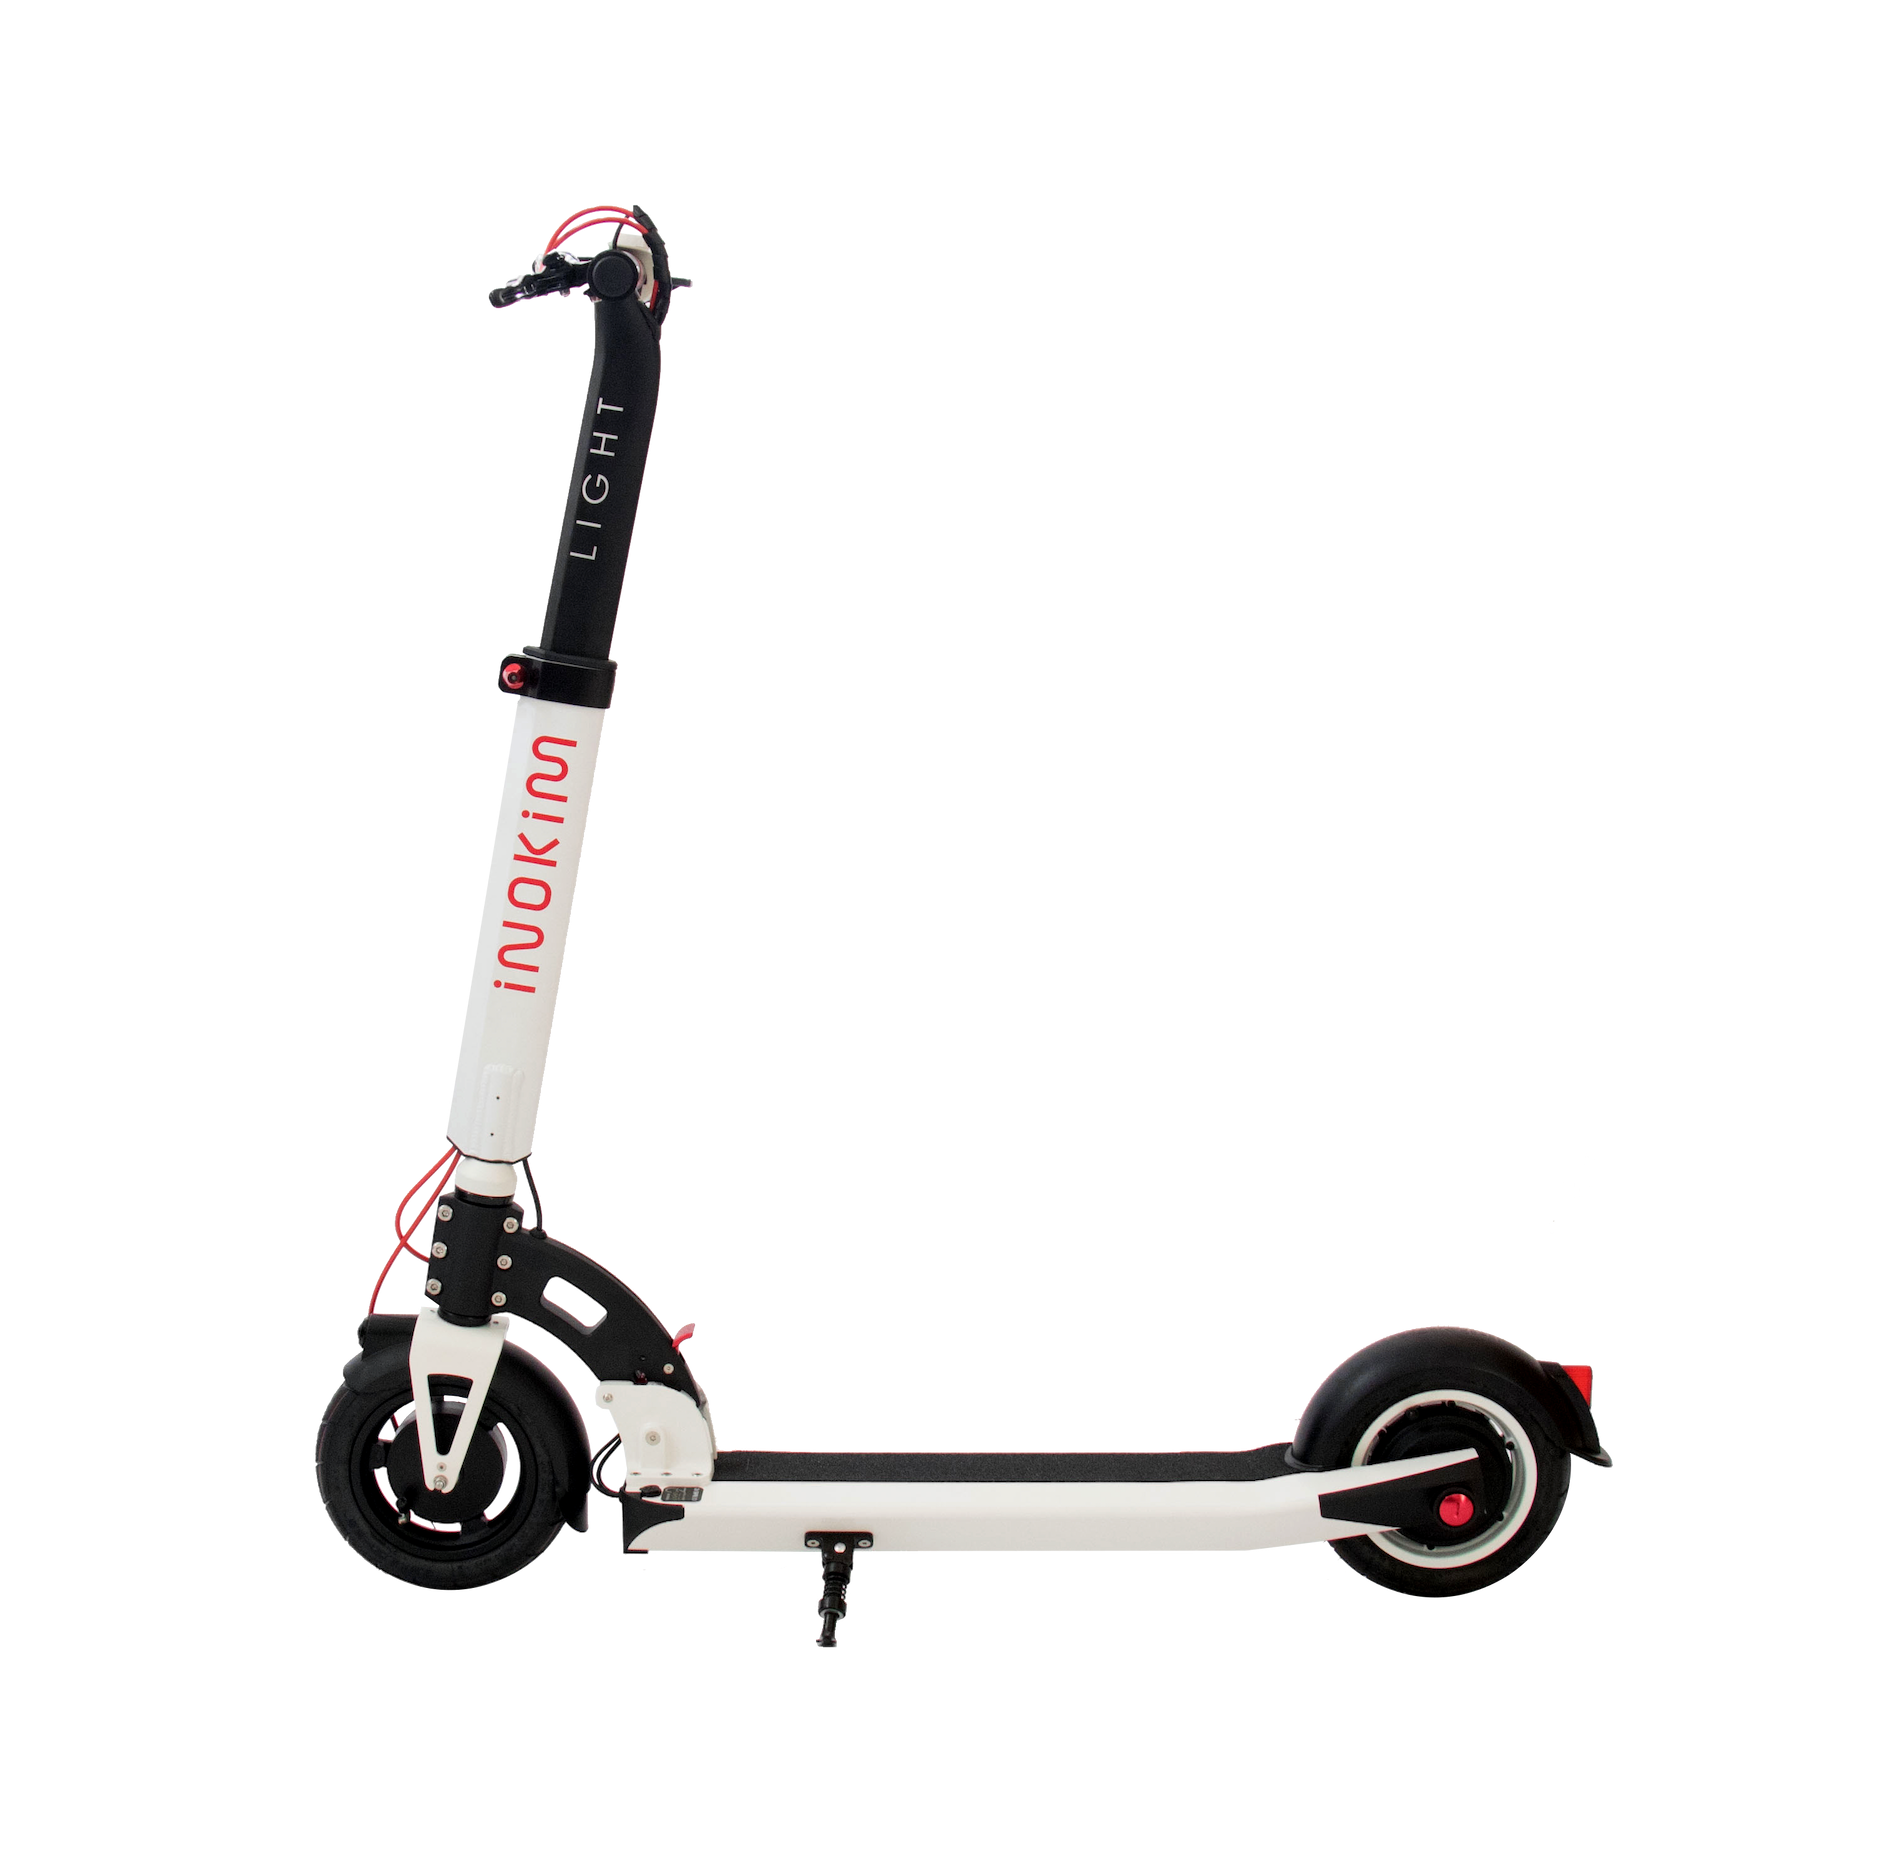 White Inokim Light 2 E-Scooter Image